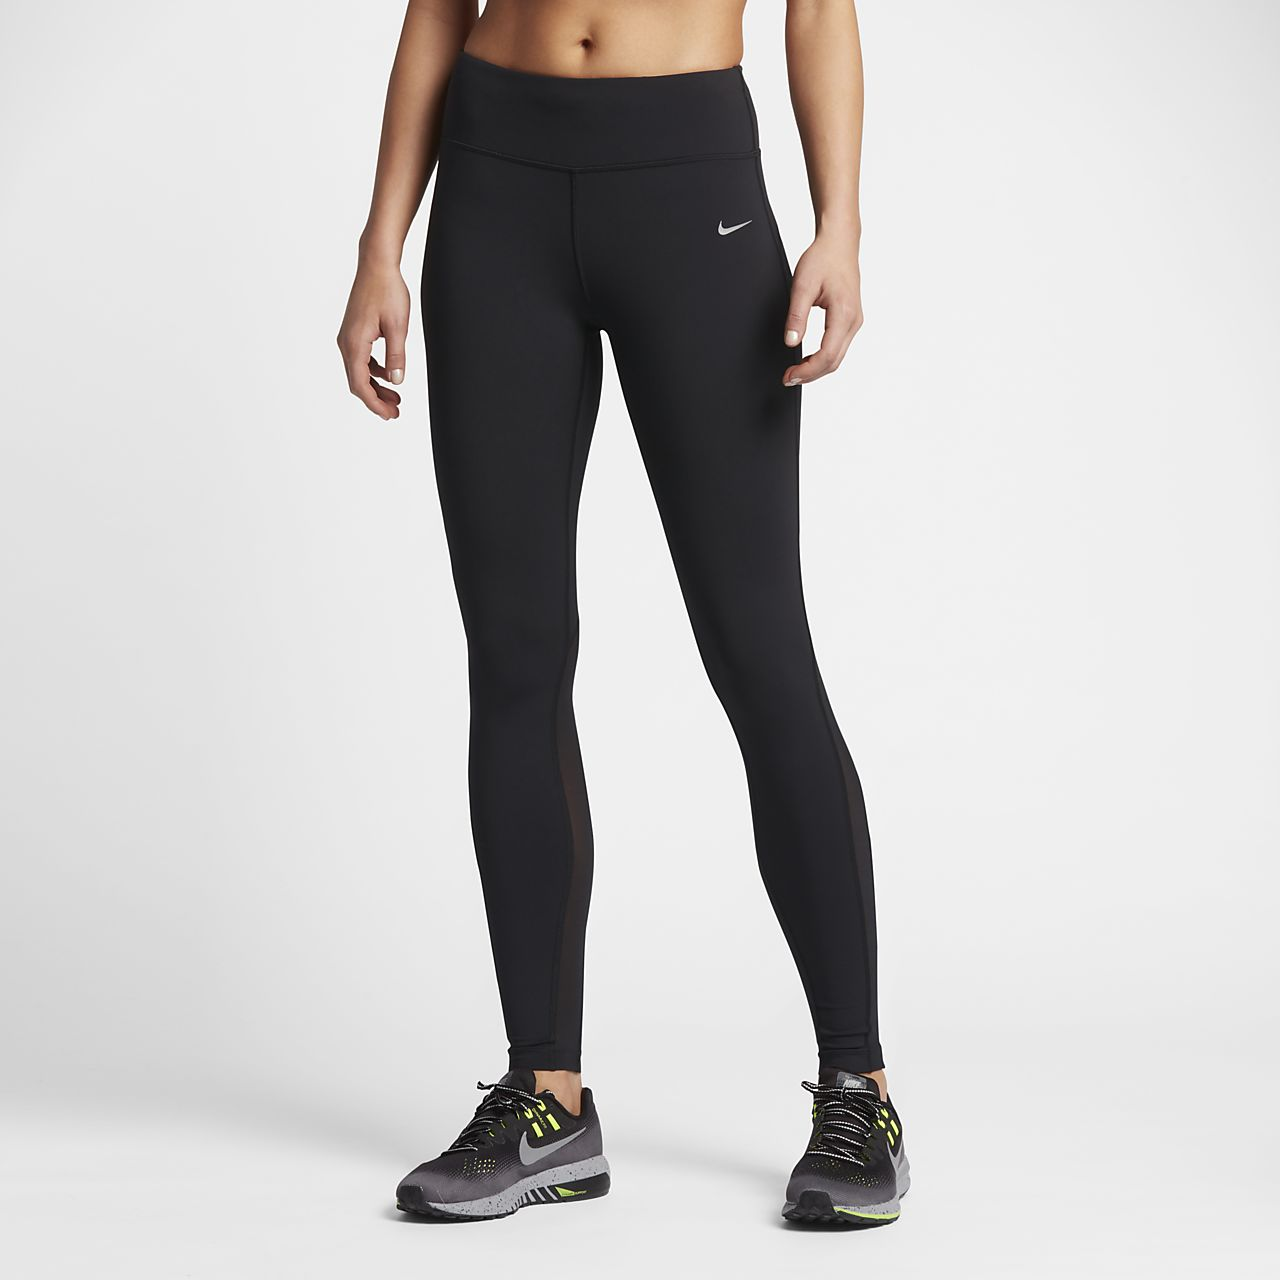 nike power epic lux women 39 s running tights au. Black Bedroom Furniture Sets. Home Design Ideas